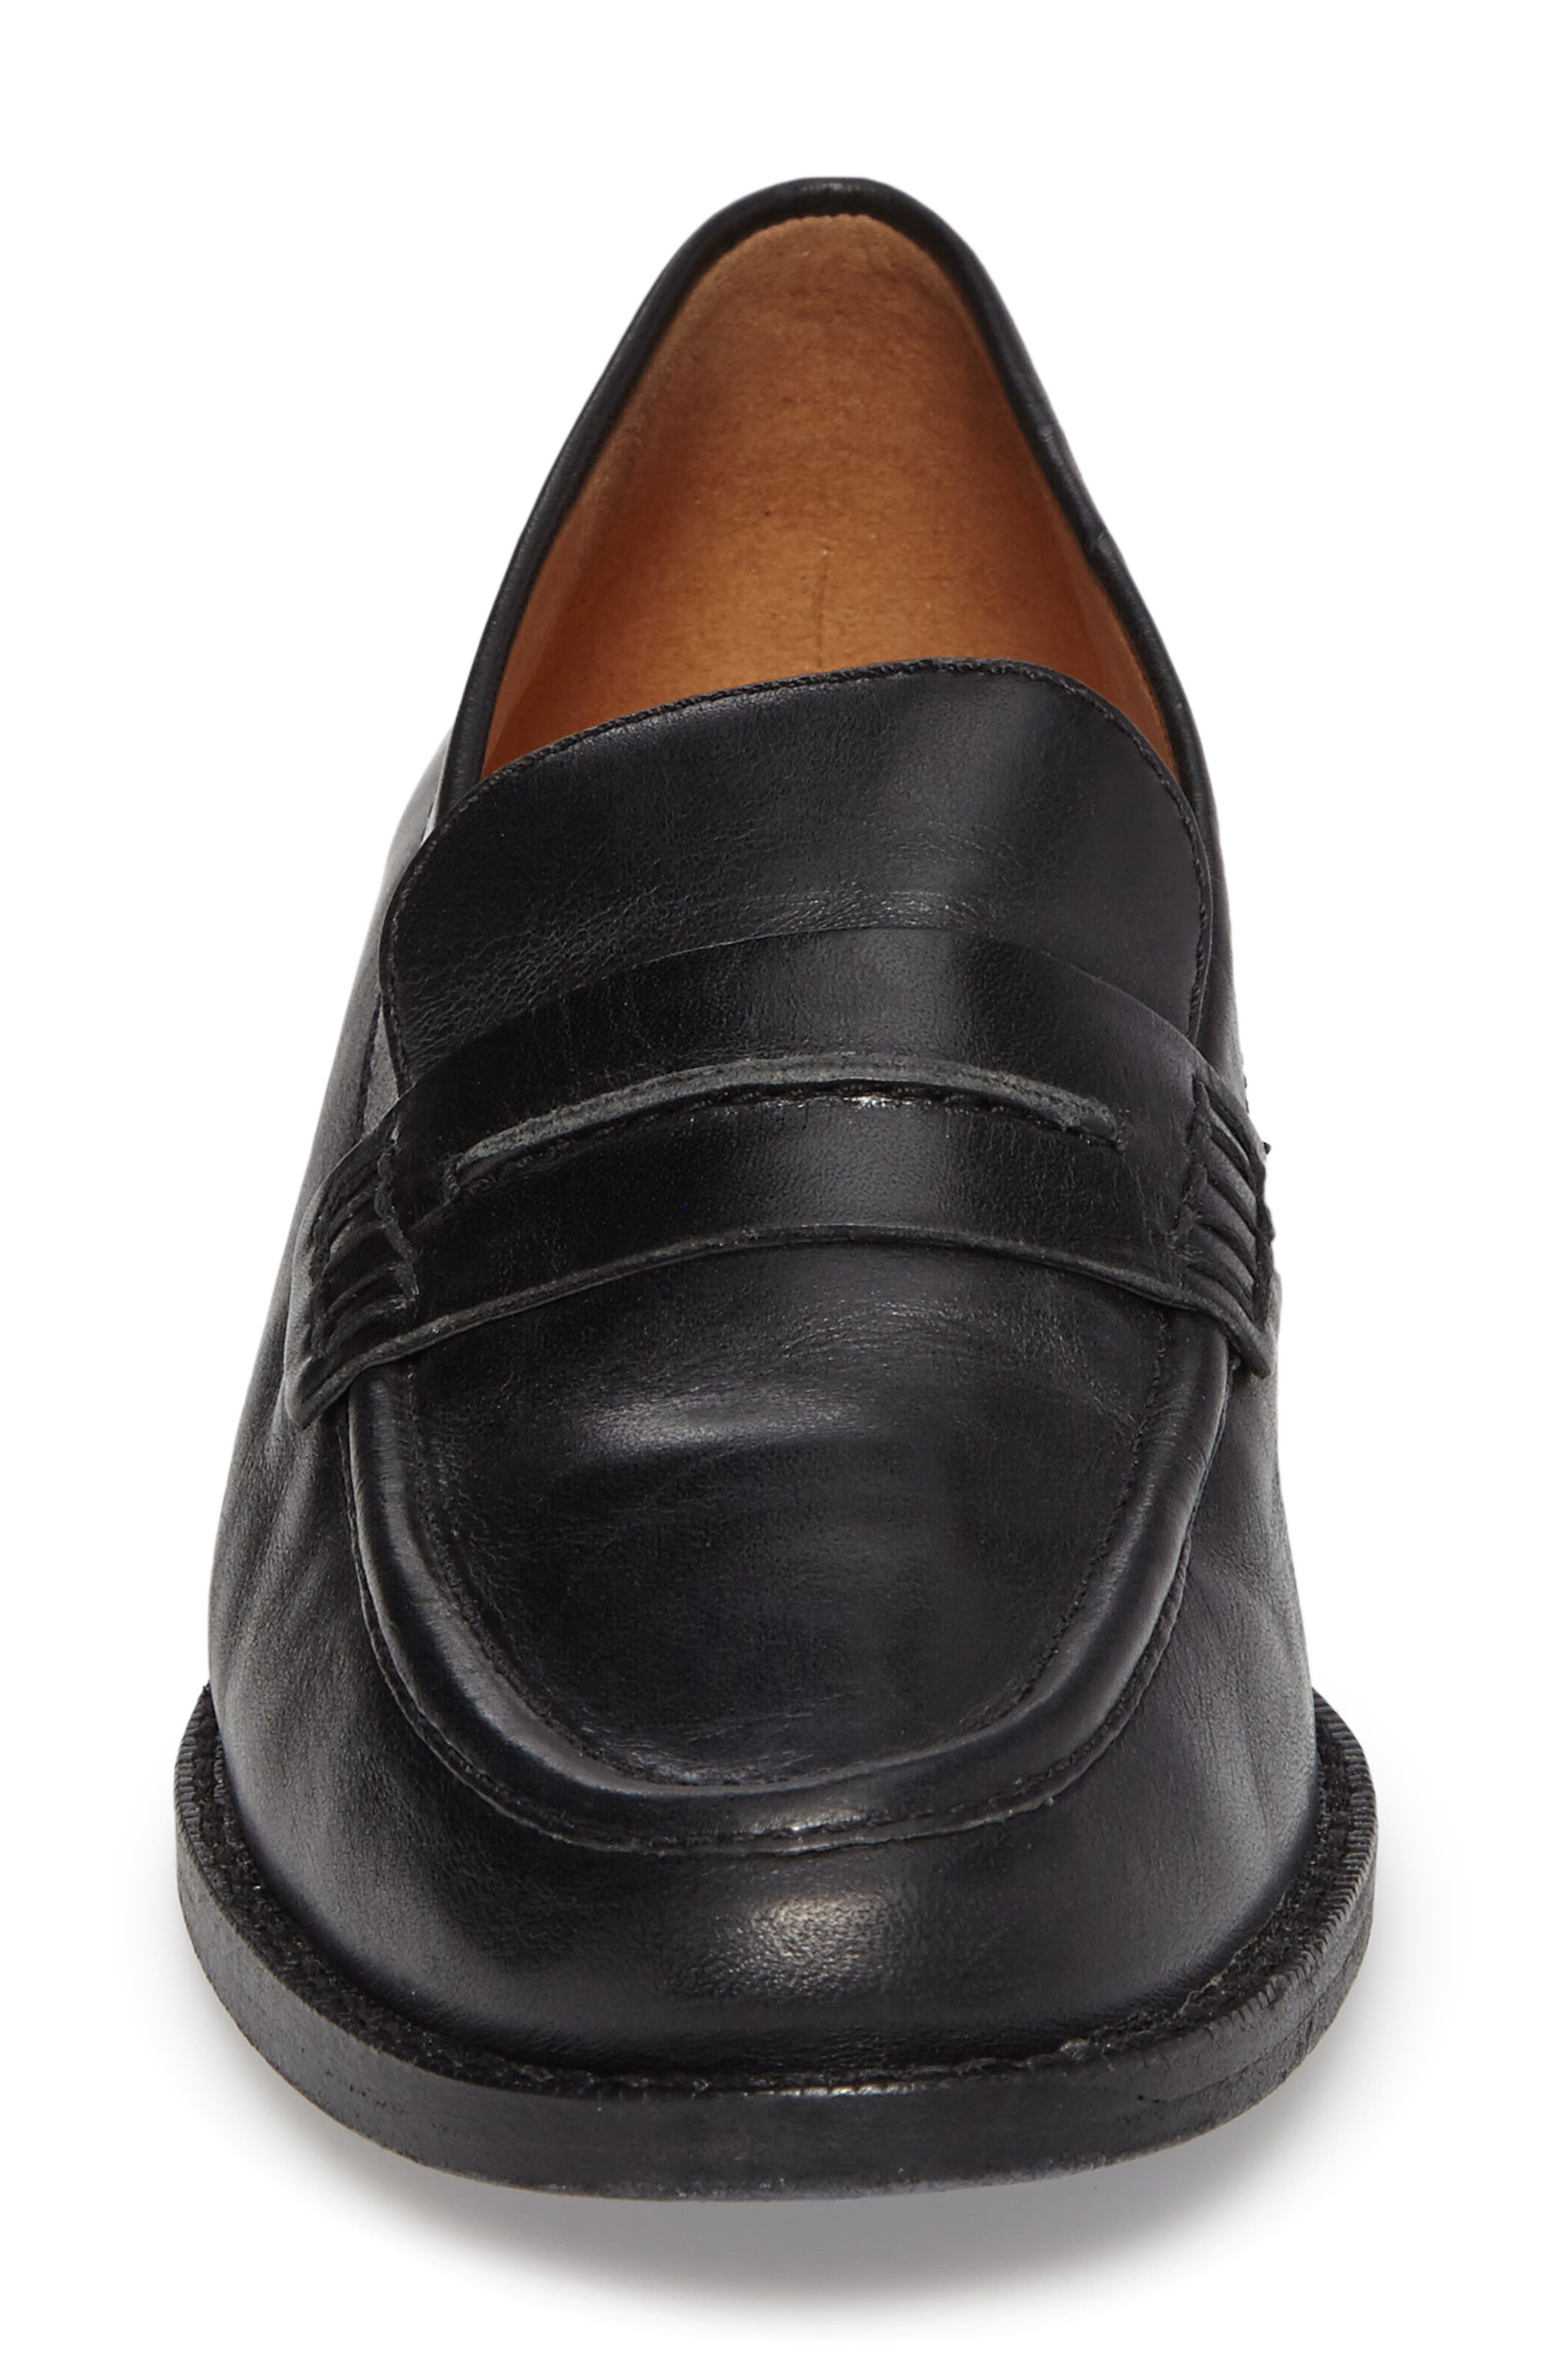 MADEWELL, The Elinor Loafer, Alternate thumbnail 4, color, 001